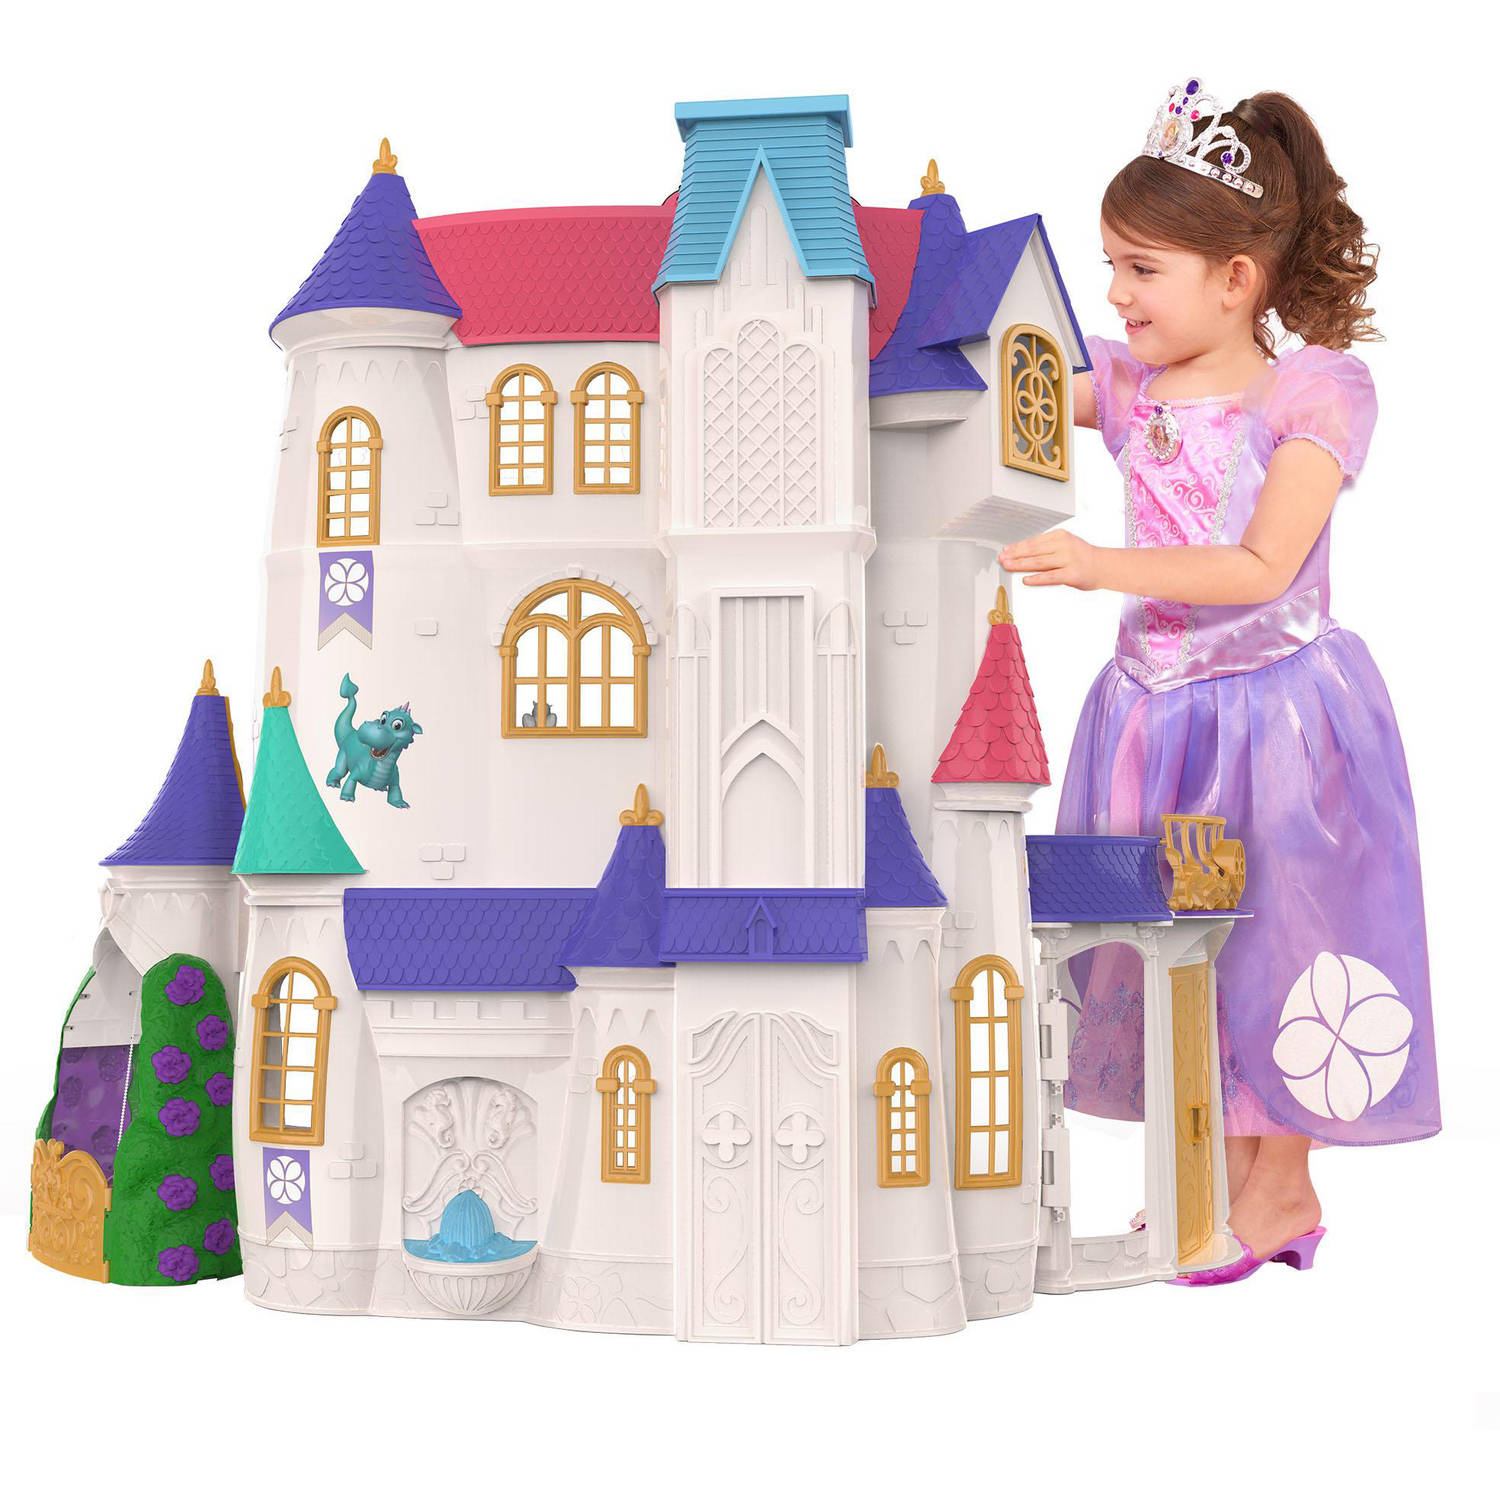 Disney Sofia the First Enchancian Castle- Over 3 FT TALL